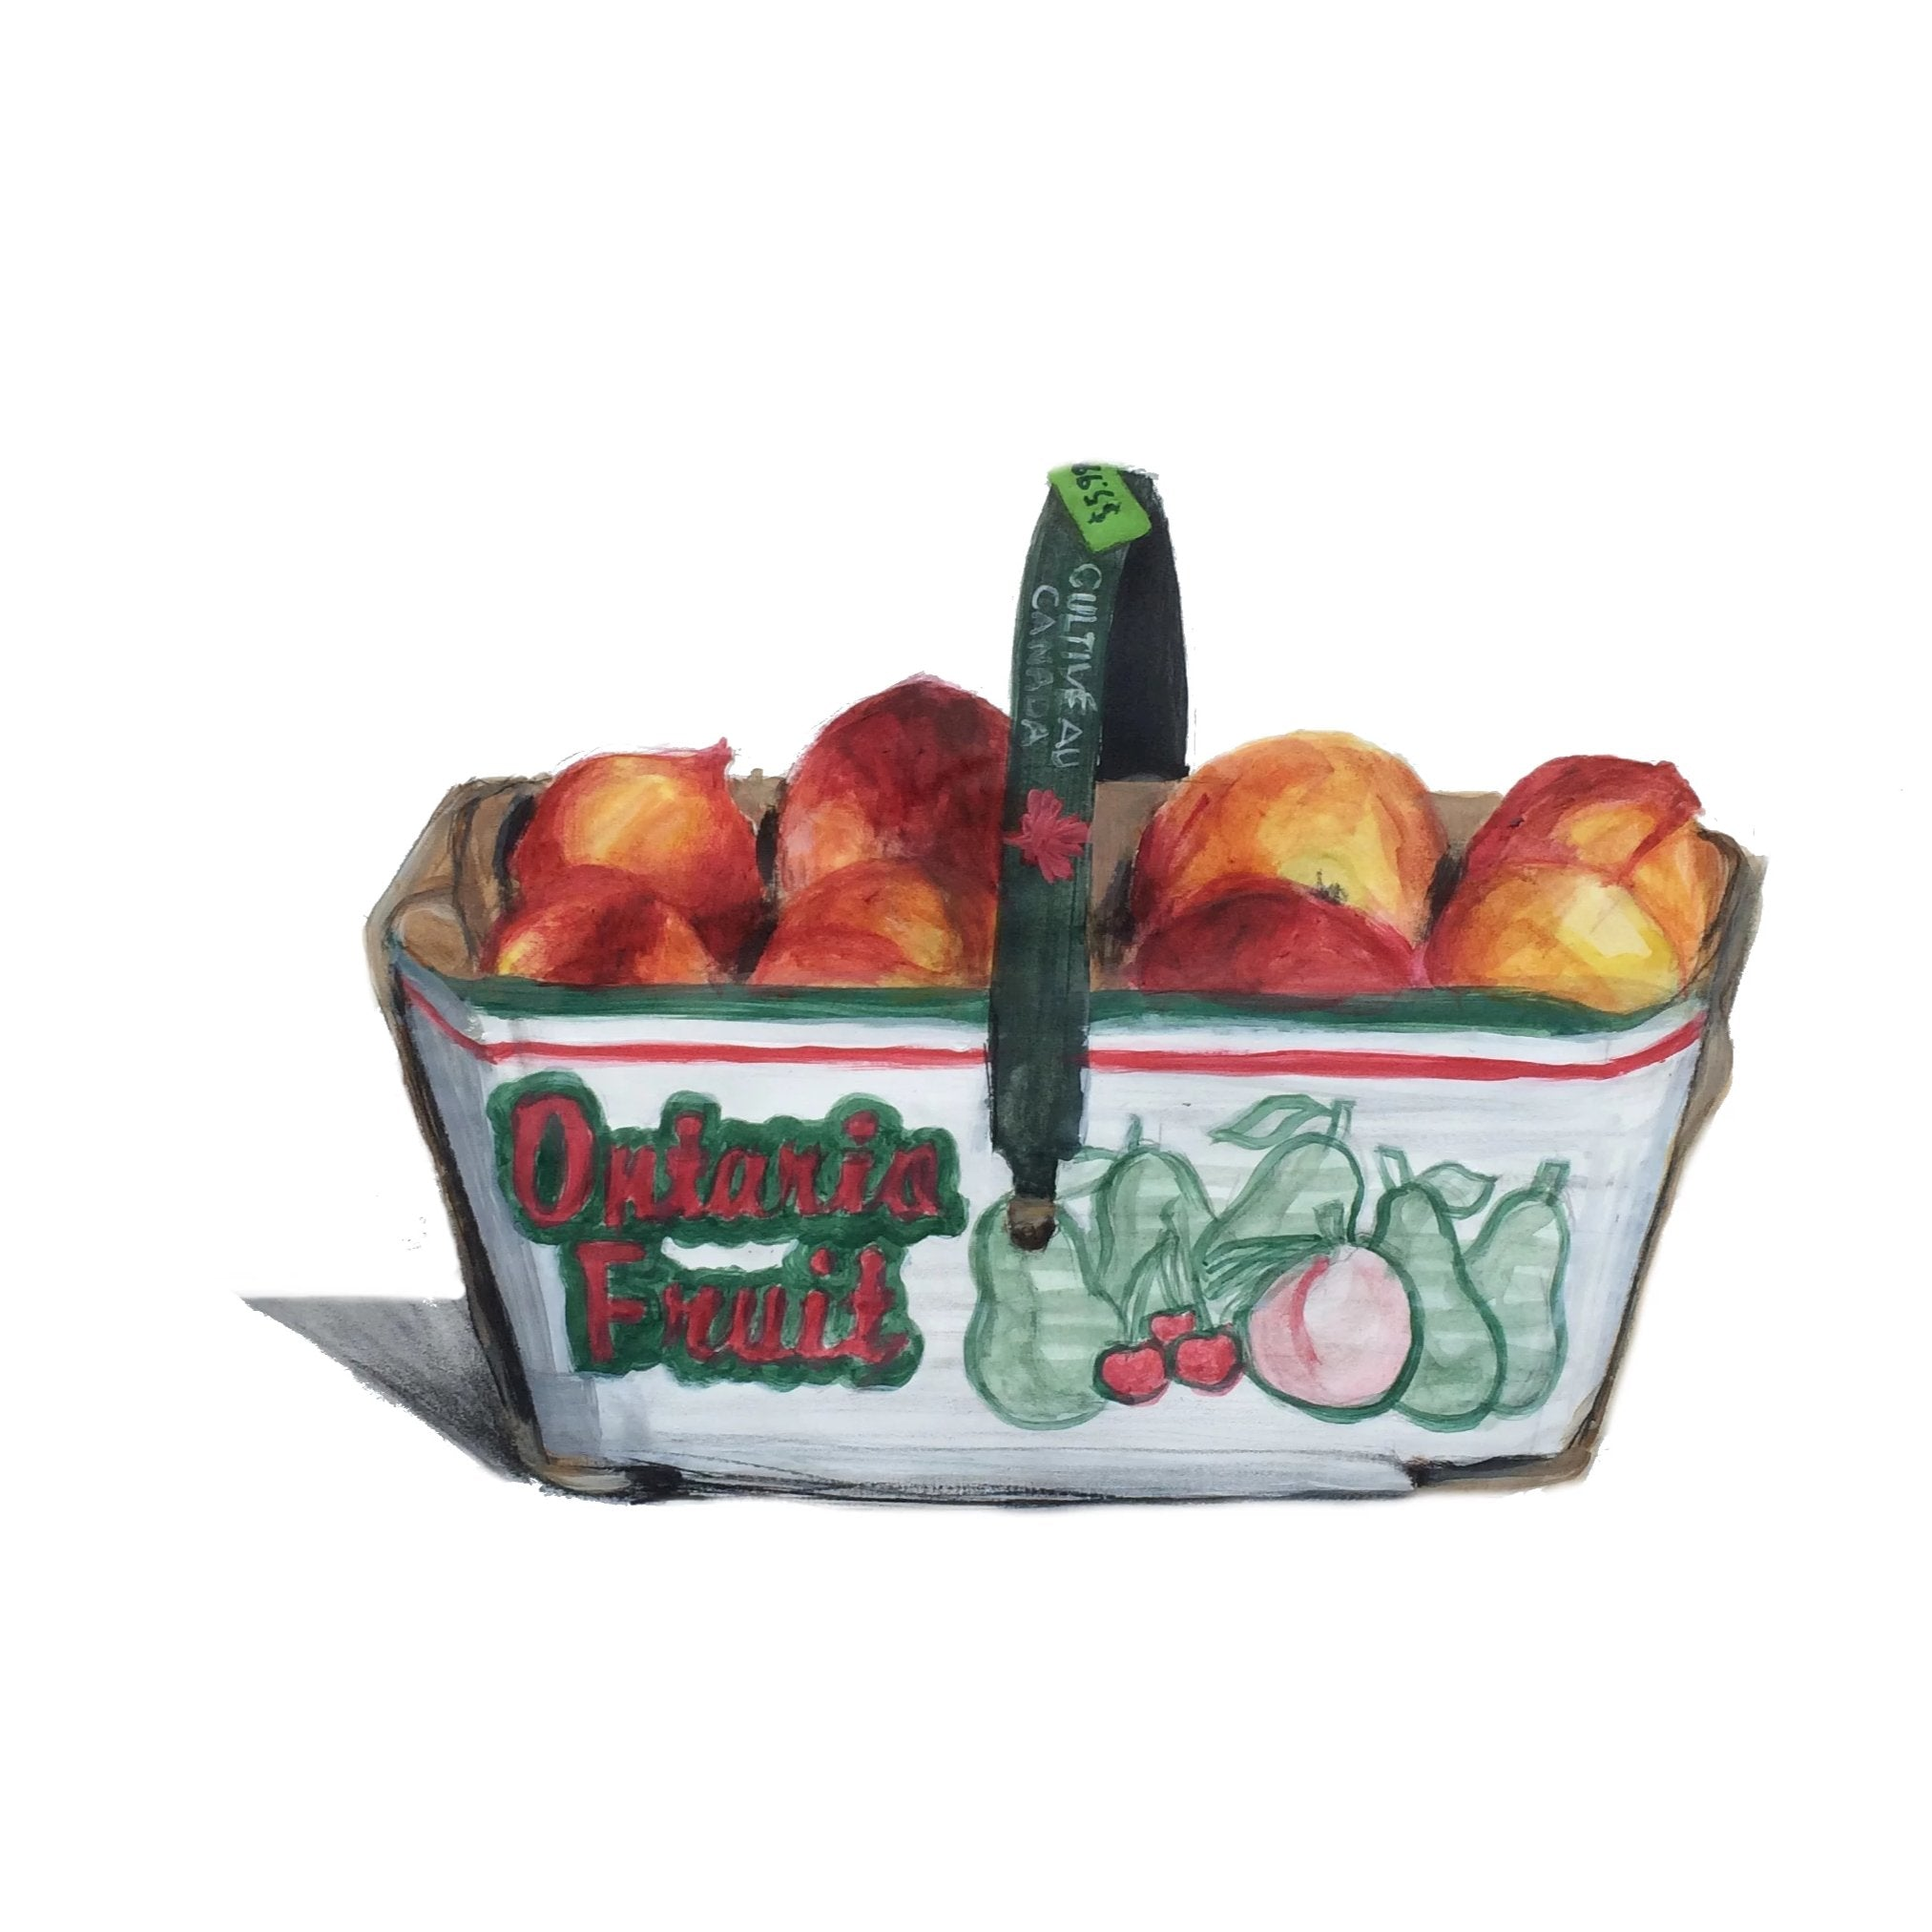 Painting of a fruit basket filled with Ontario peaches by Canadian artist Alli Boddy